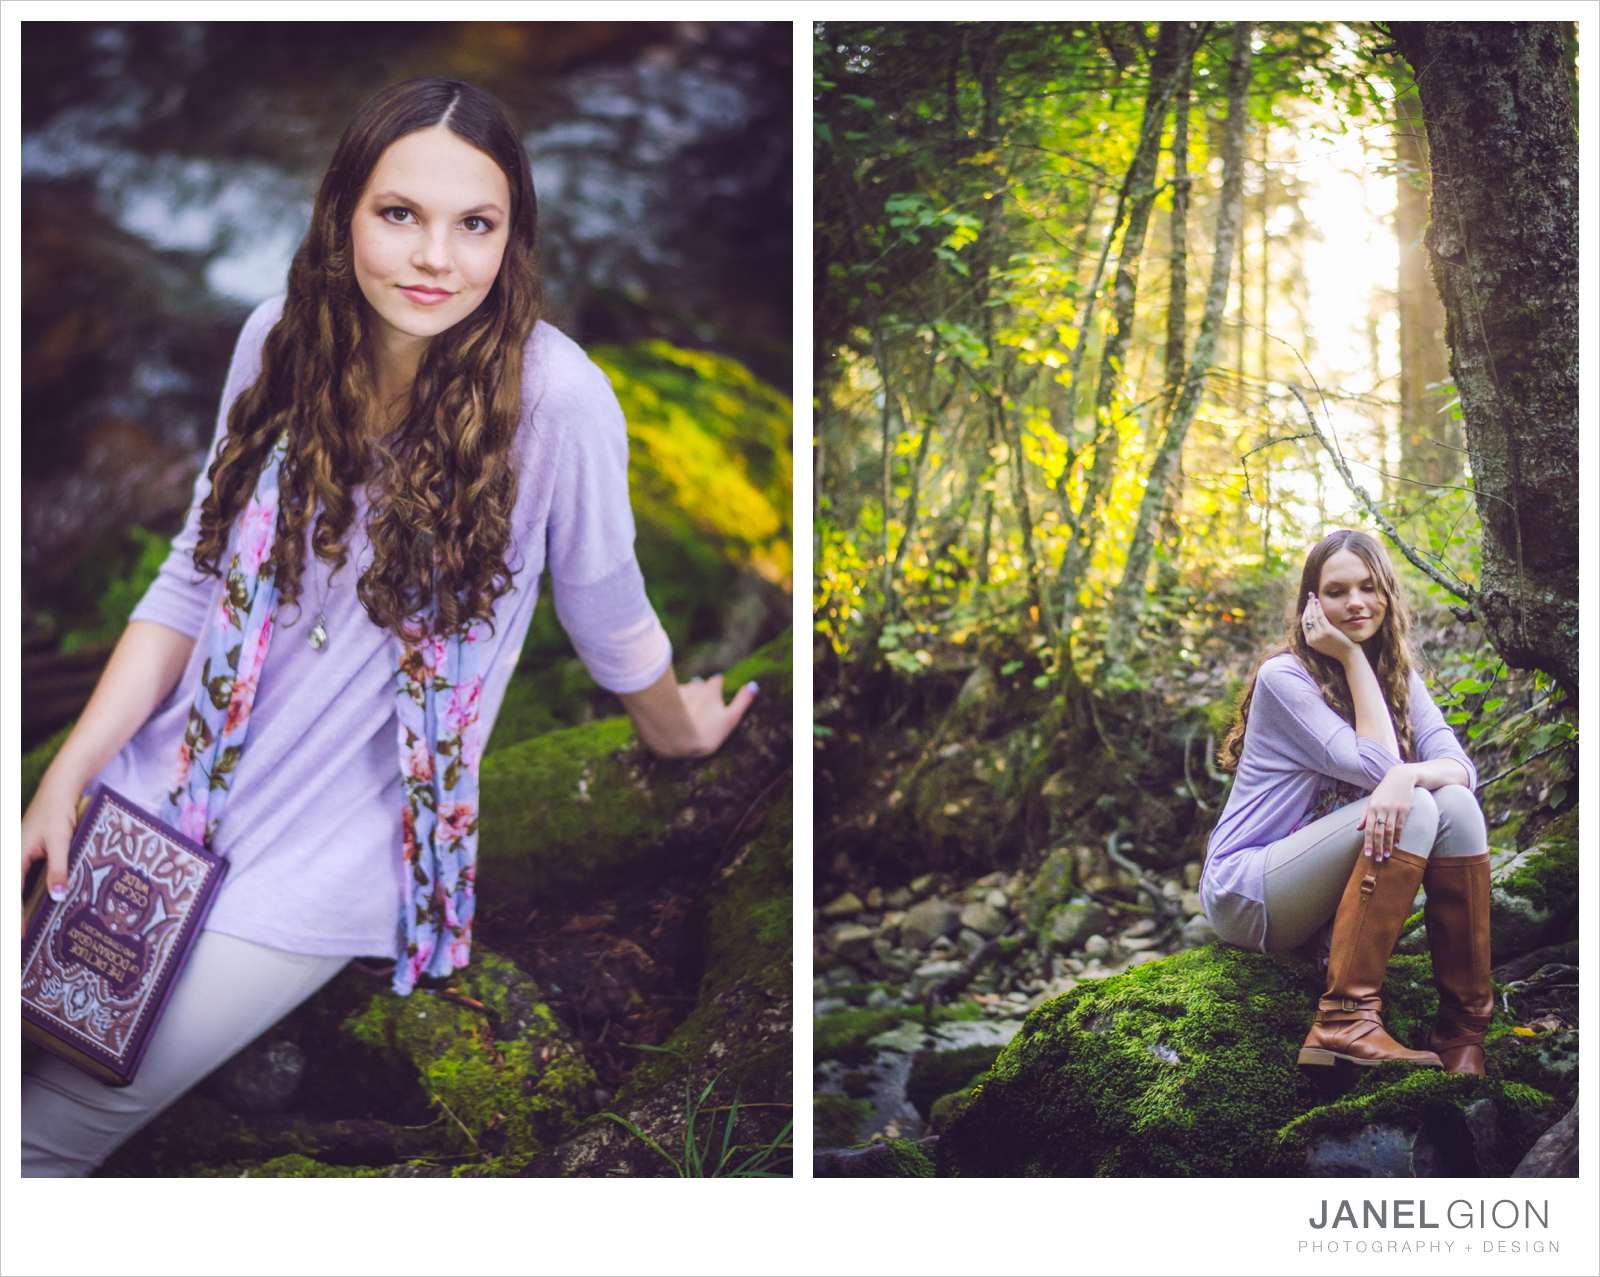 North-Idaho-Family-Children-Photographer-Year-in-Review-Contest-2013-Lifestyle-Family-Portraits-by-Janel-Gion-Photography_0035.jpg